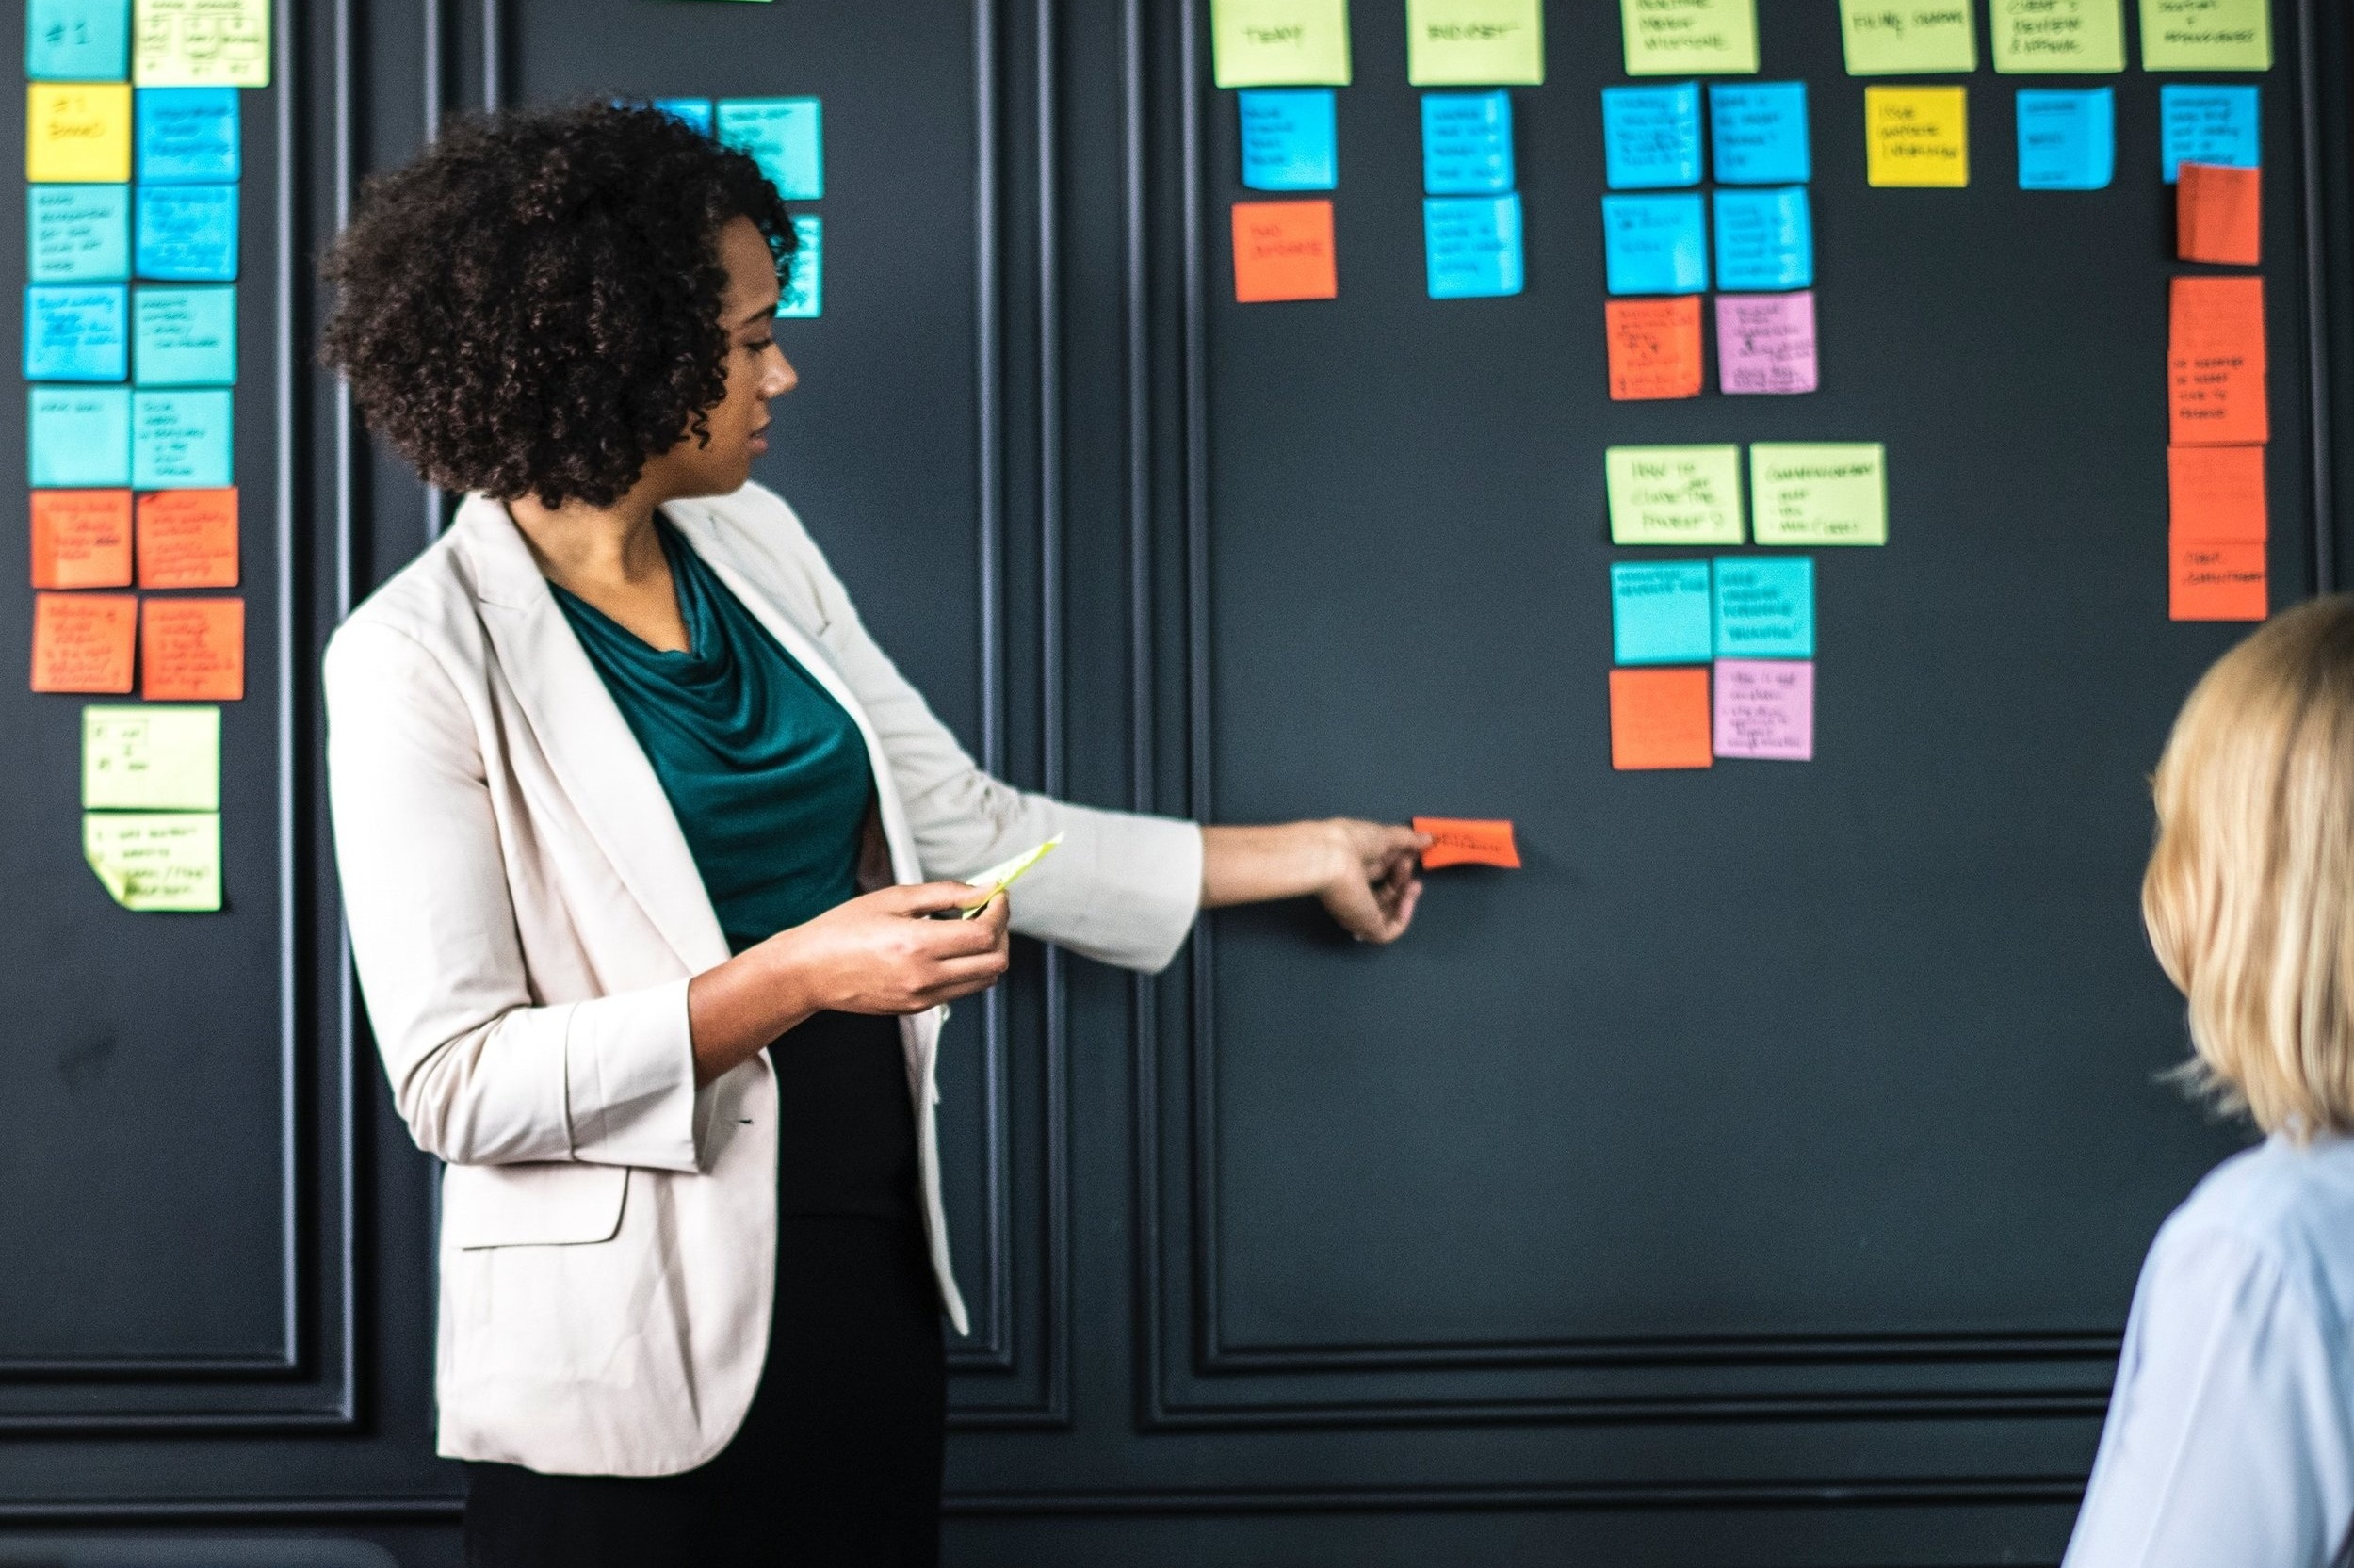 host a community workshop - Does your nonprofit empower women in the community? We want to work with you! Our custom design thinking workshop helps members of your organization come together to produce valuable work.